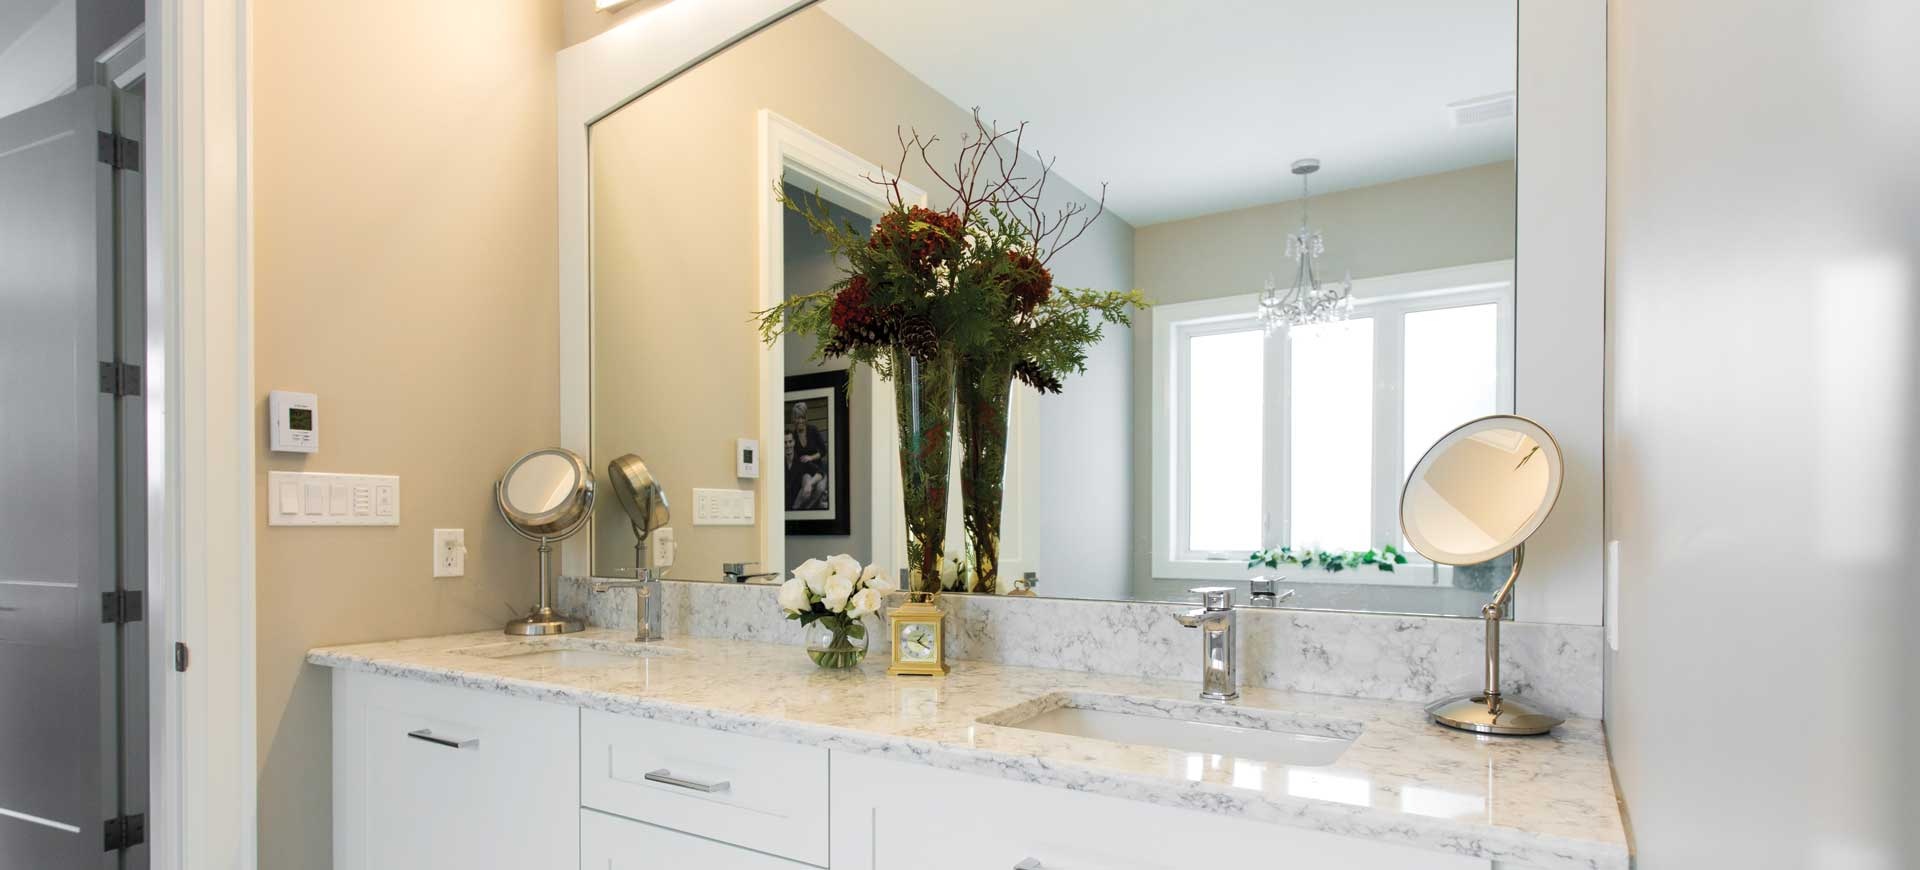 white bathroom vanity with marble countertop and backsplash